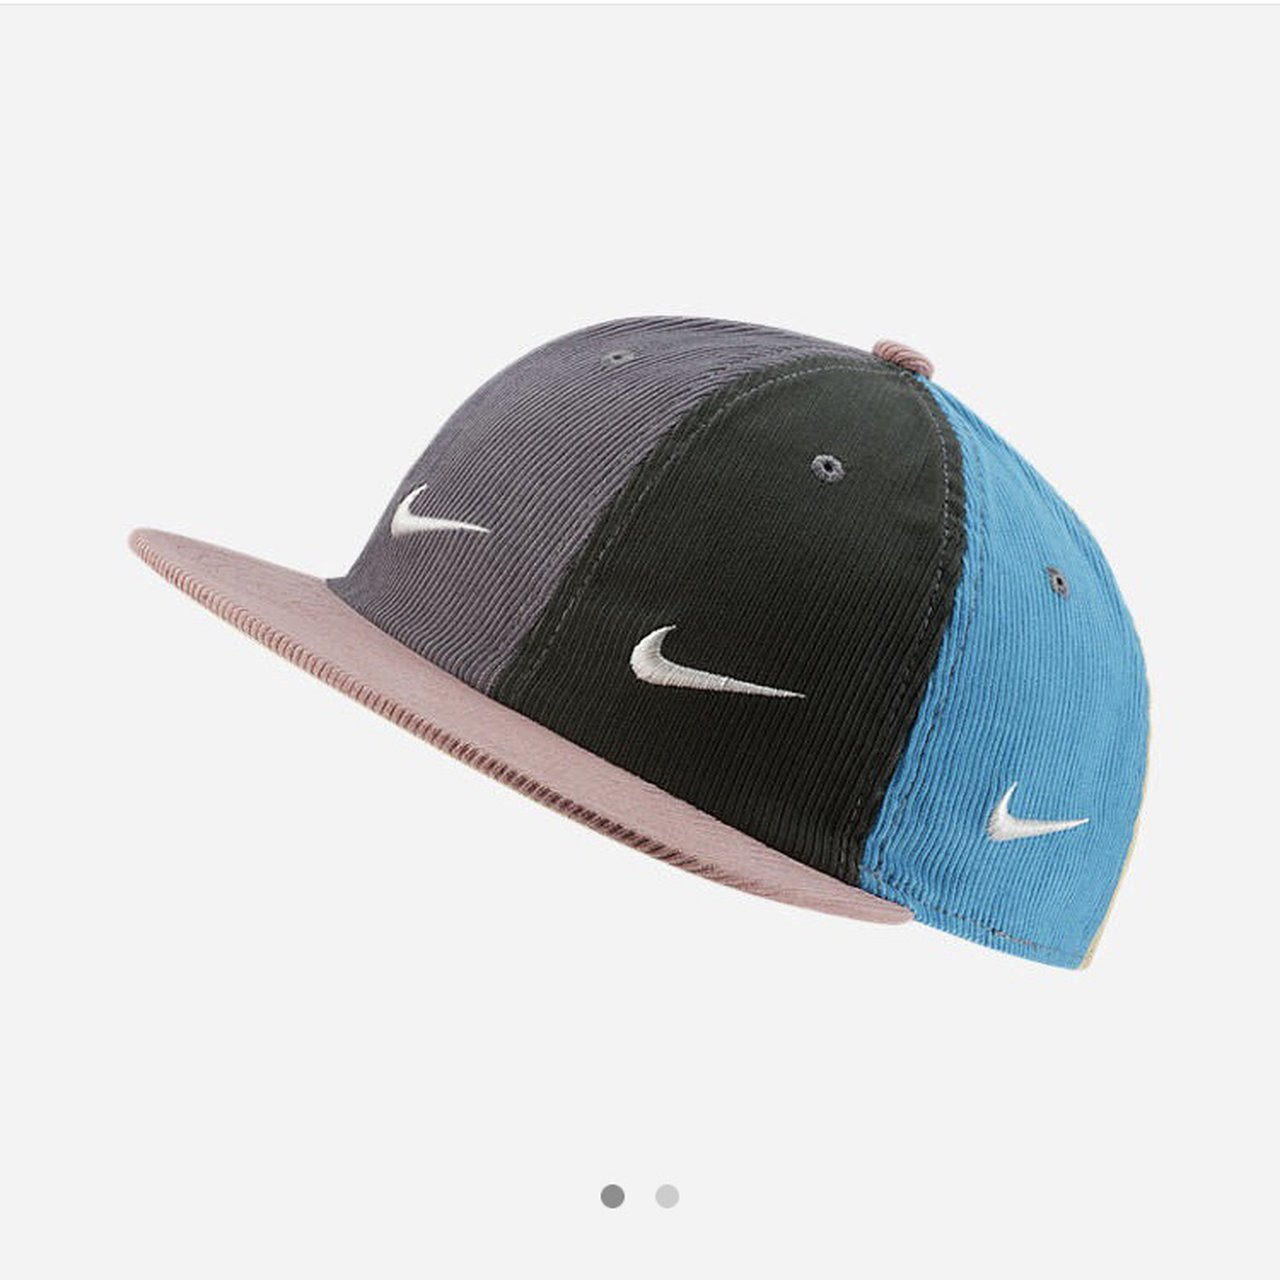 3c2ac8fe5c1 Sean Wotherspoon Nike air max day corduroy hat Bought on w - Depop